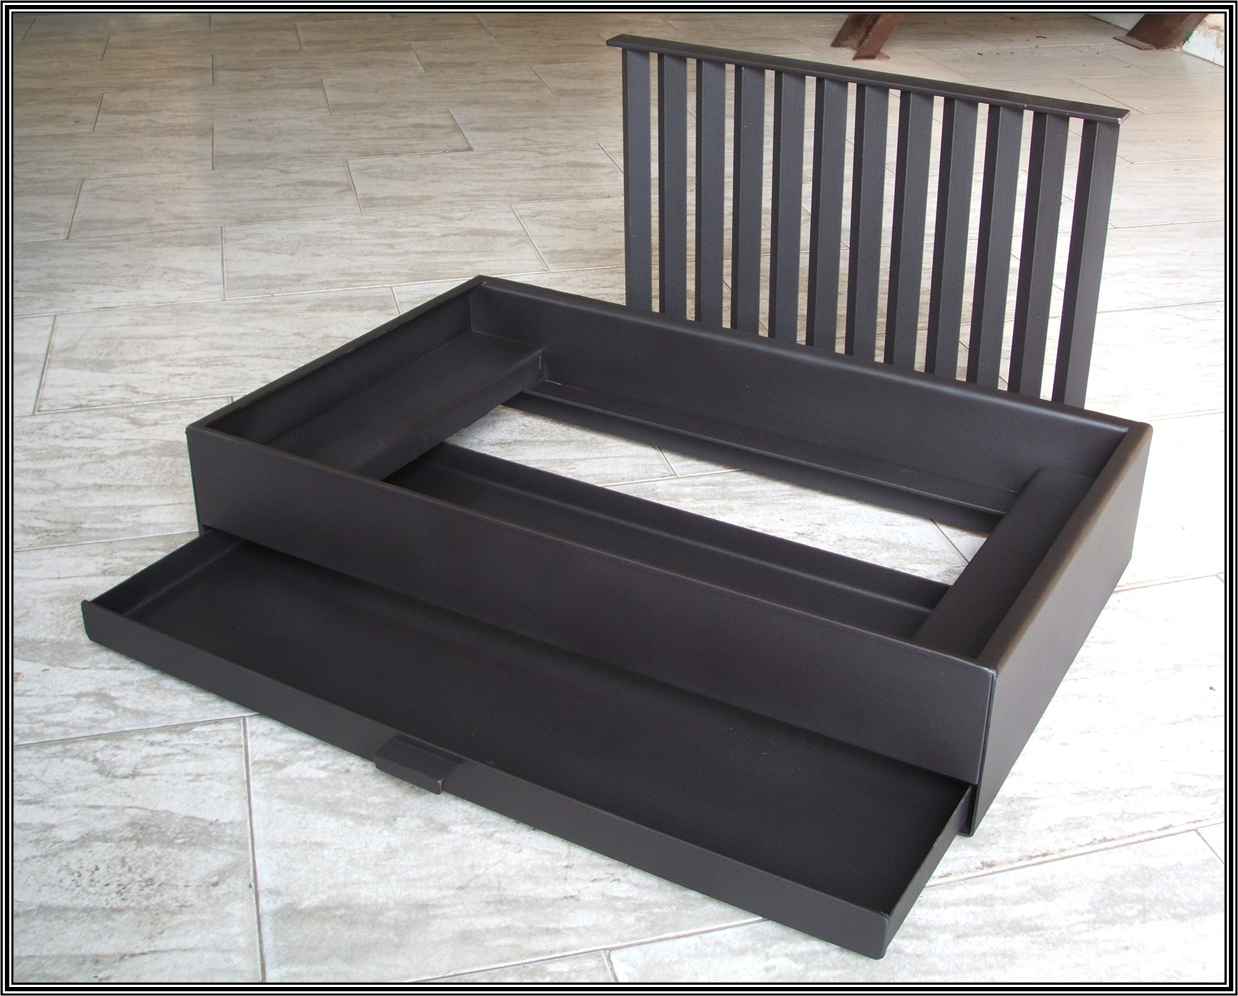 Decoracion mueble sofa accesorios para barbacoas de obra - Parrillas de barbacoa ...